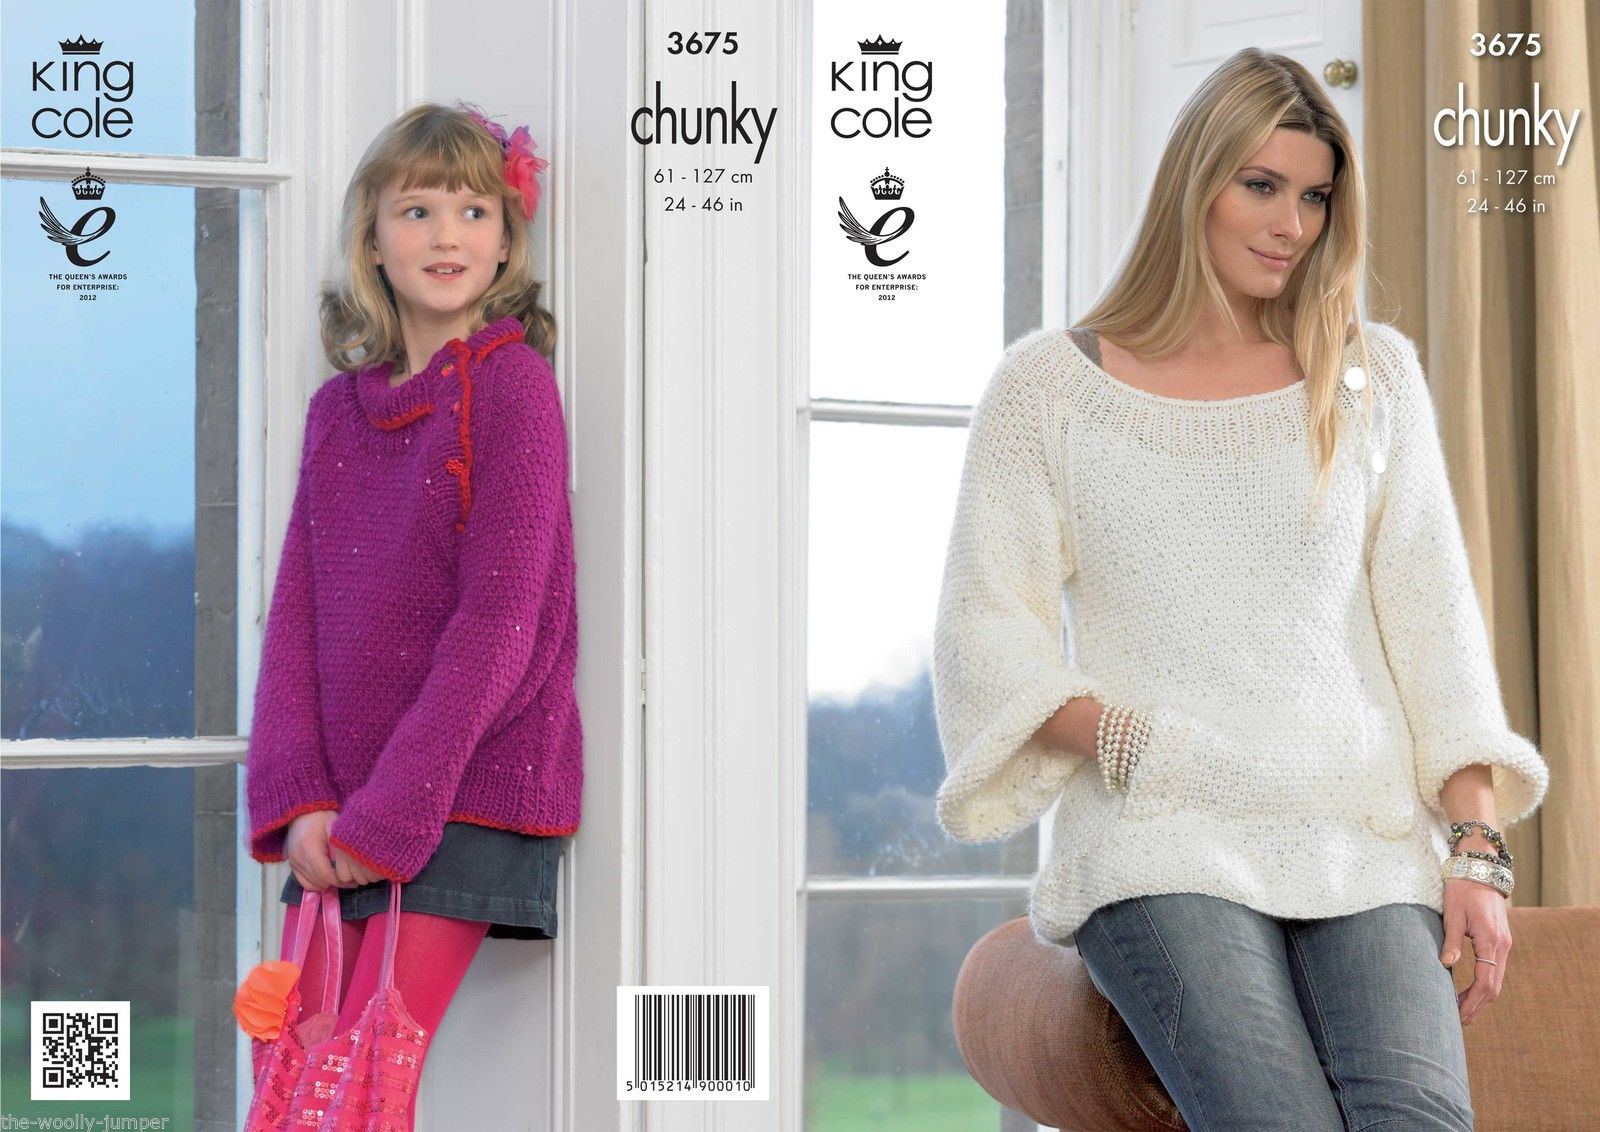 9db18493d 3675 - KING COLE GALAXY CHUNKY TUNIC   SWEATER KNITTING PATTERN - TO FIT 24  TO 46